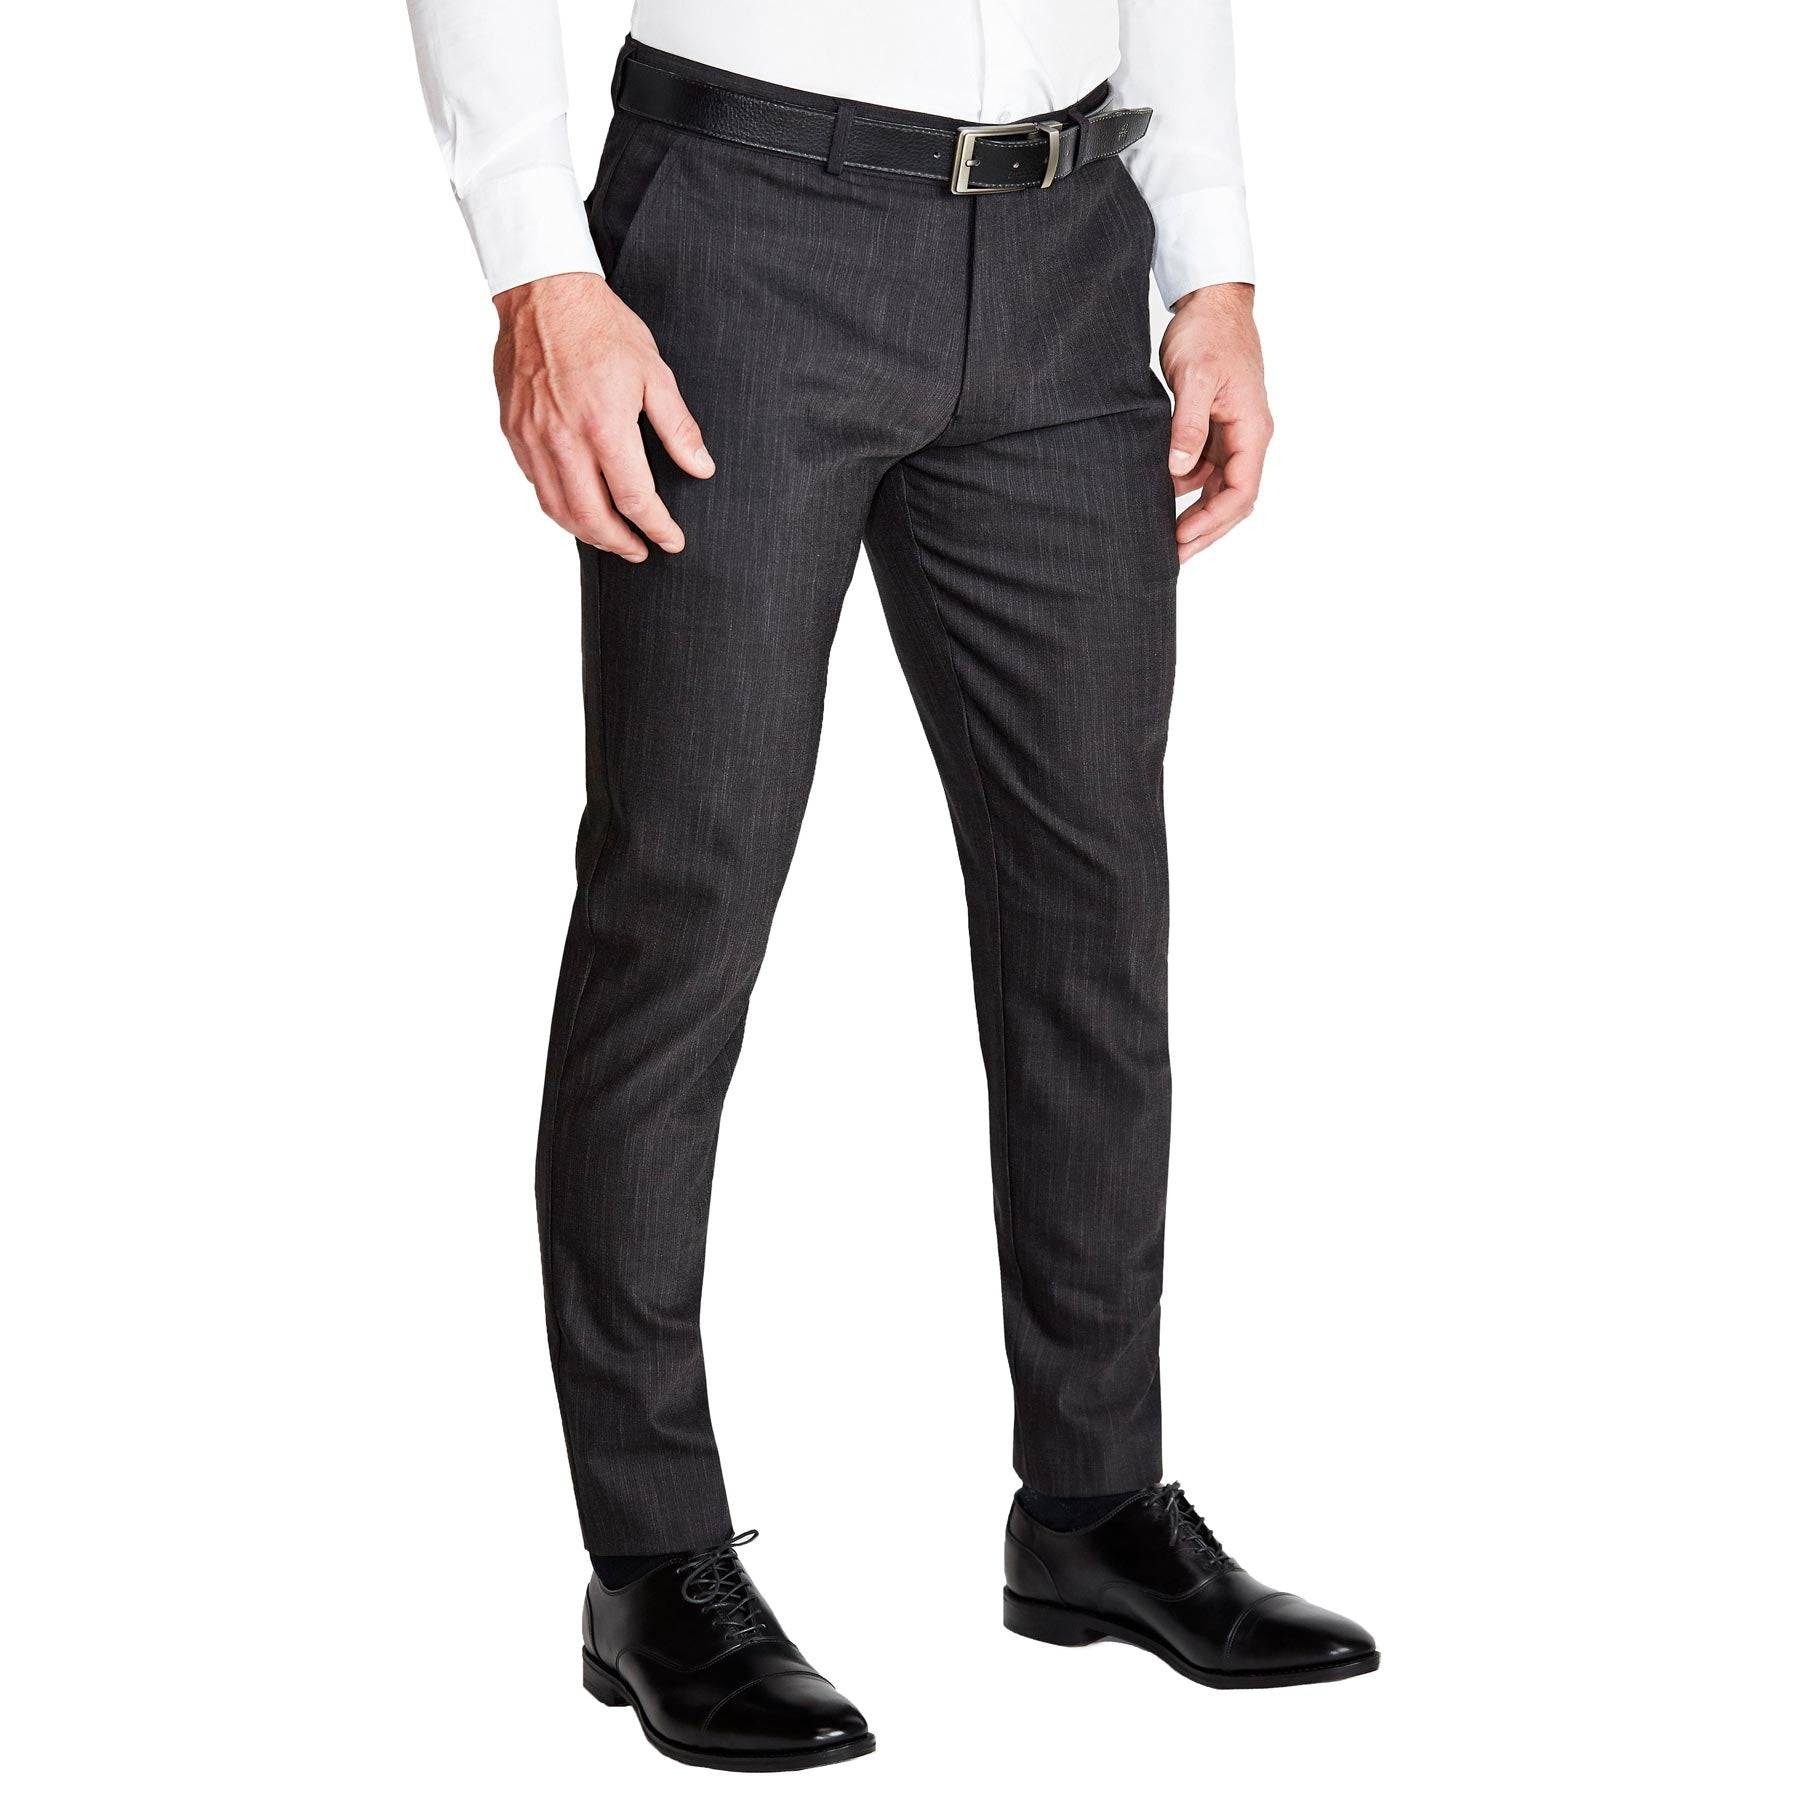 StateLiberty Athletic Fit Stretch Suit Pants - Heathered Charcoal